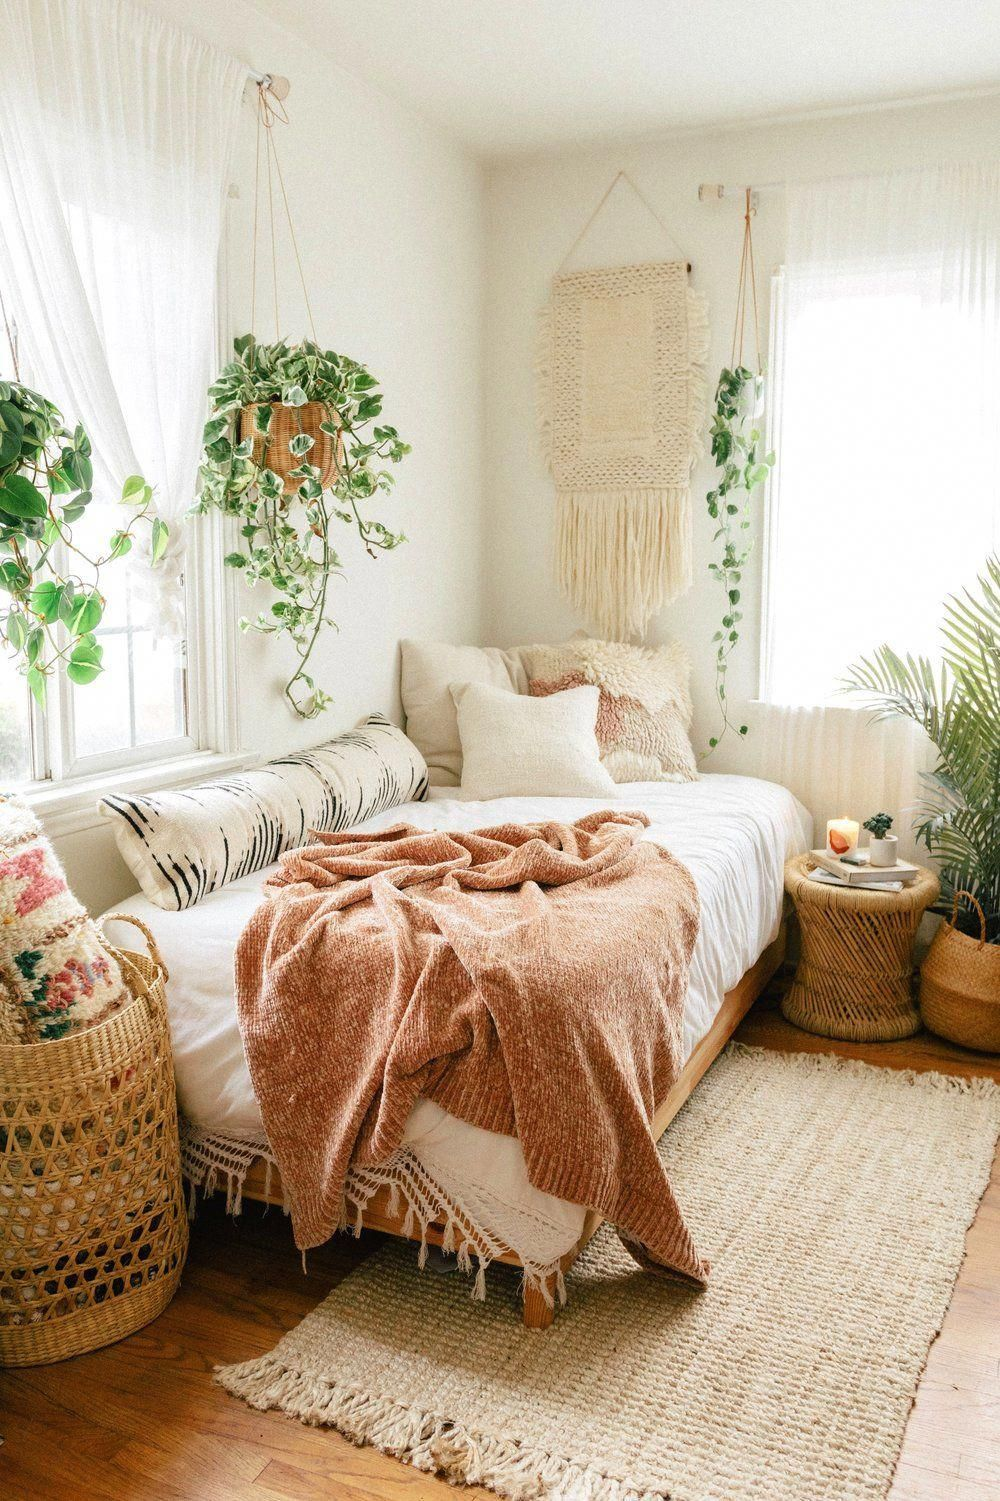 Interior Design Of Guest Room: Decorating+guest+bedroom+2 #hippiehomedecor (With Images